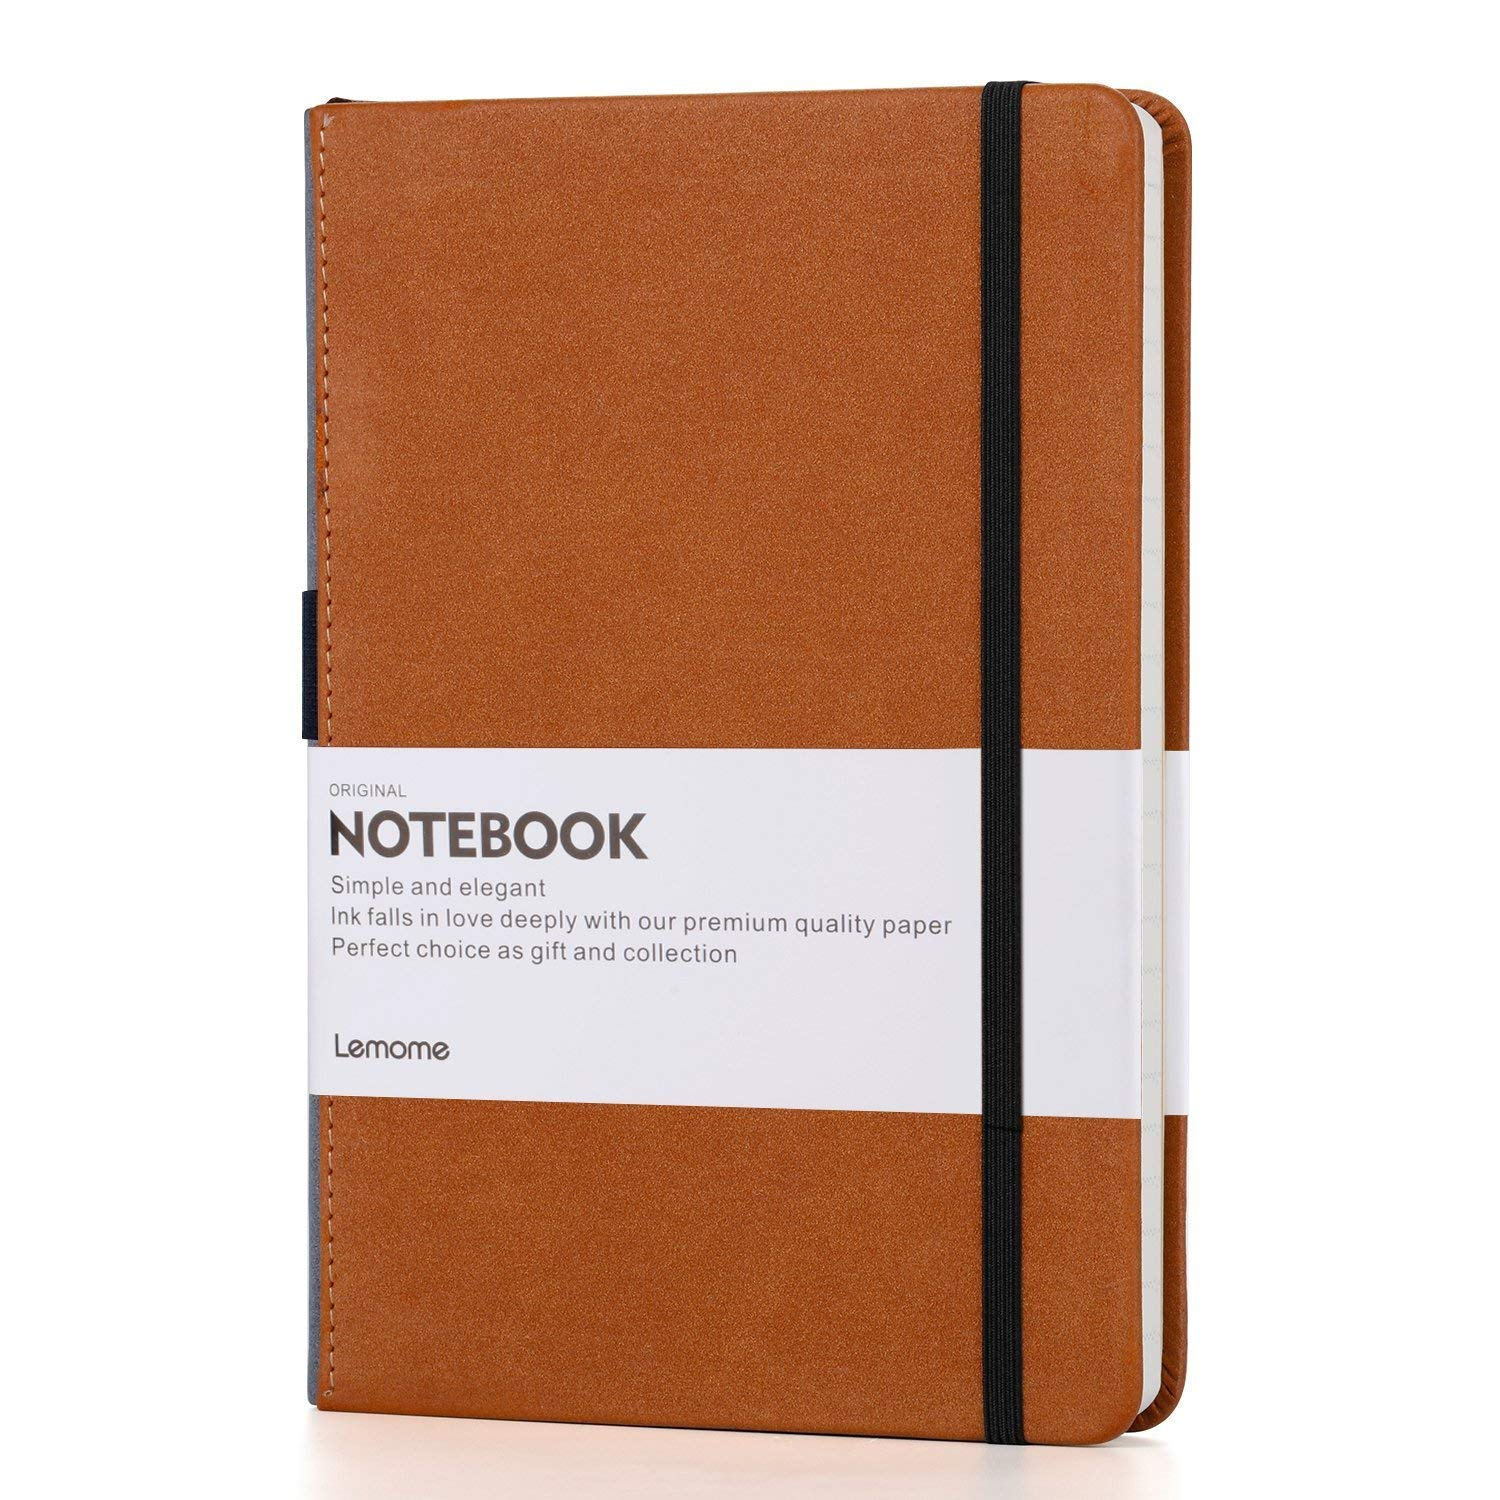 This is my favorite hardcover notebook ever! I journal everyday in it, and I adore the elastic pen loop on the side of the binding, so I am never without a pen. It's sleek and handsome, perfect for anyone on your list.